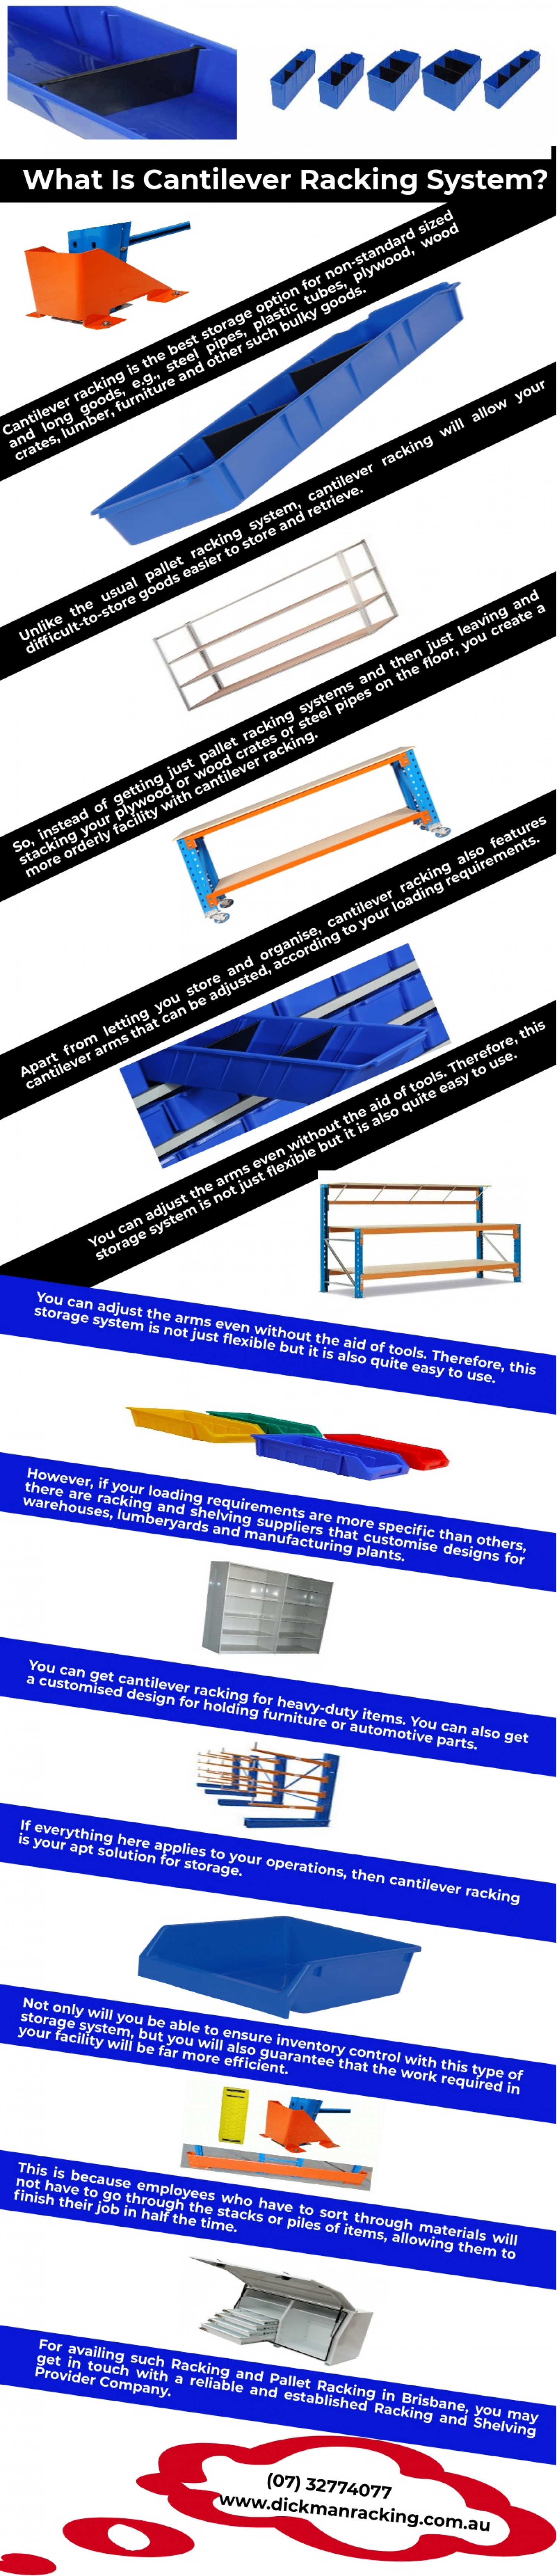 What Is Cantilever Racking System?  Infographic